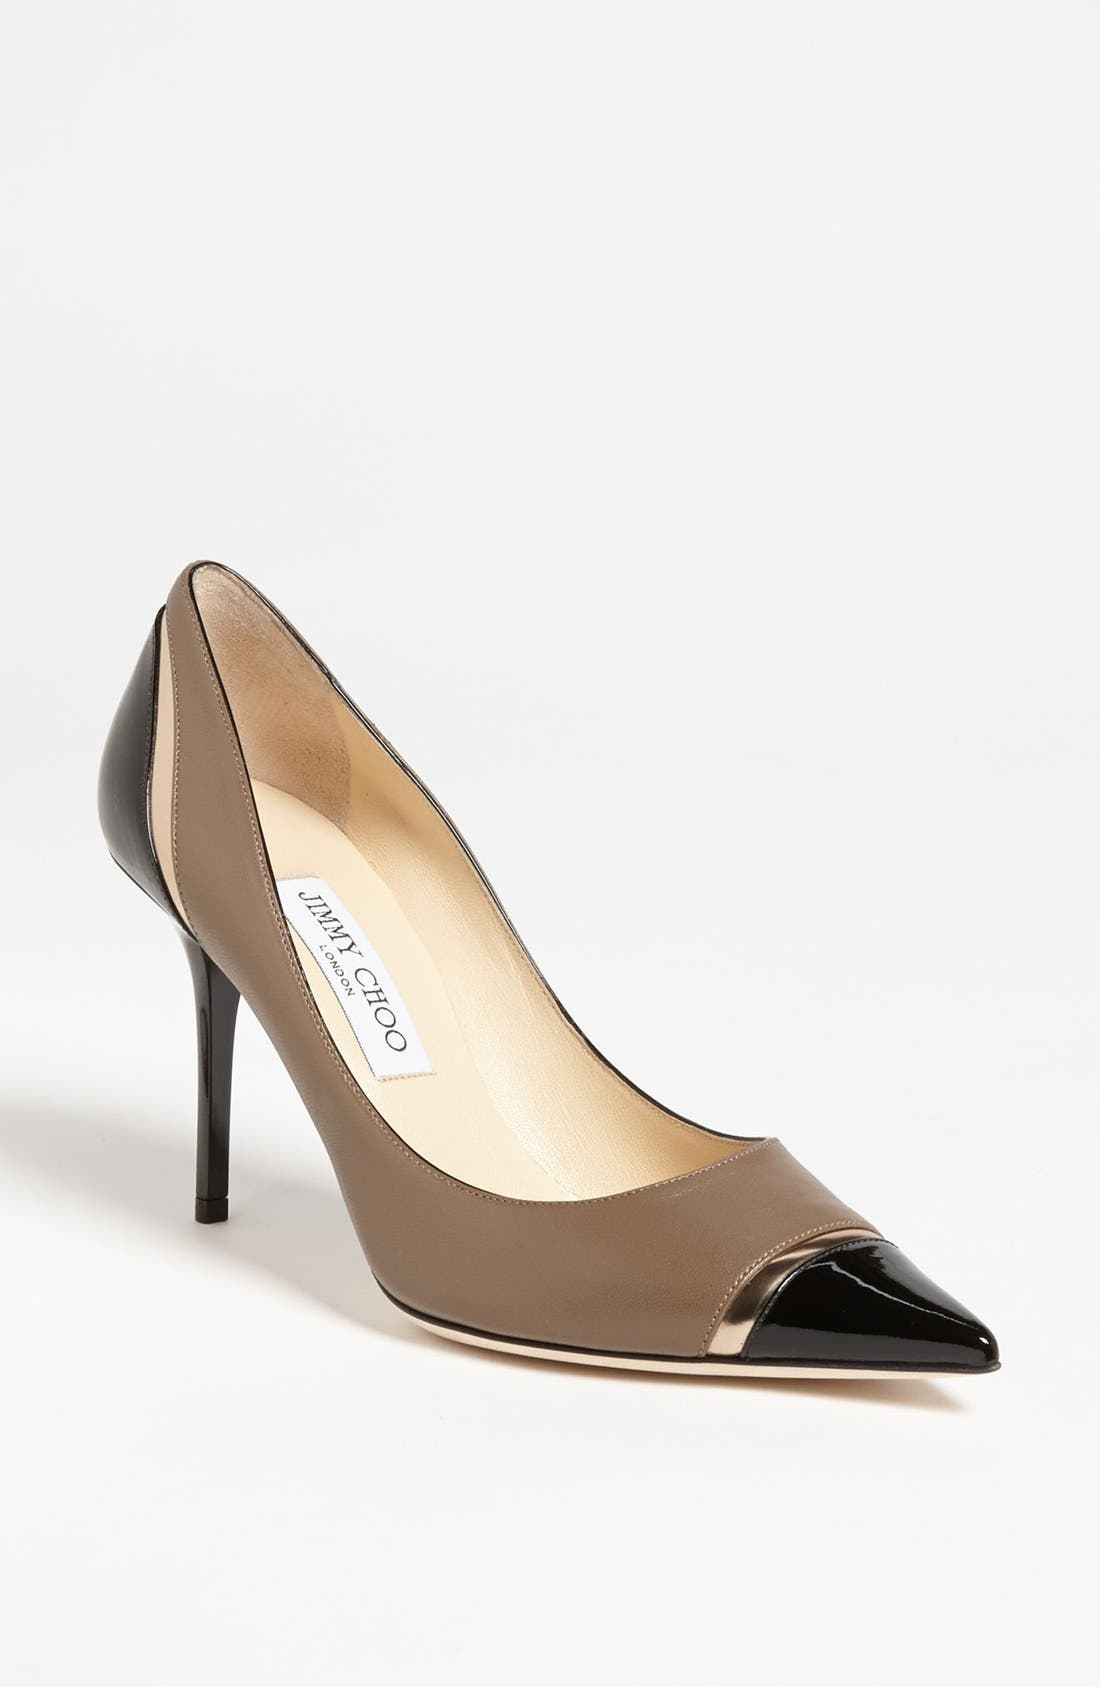 Alternate Image 1 Selected - Jimmy Choo 'Lilo' Cap Toe Pump